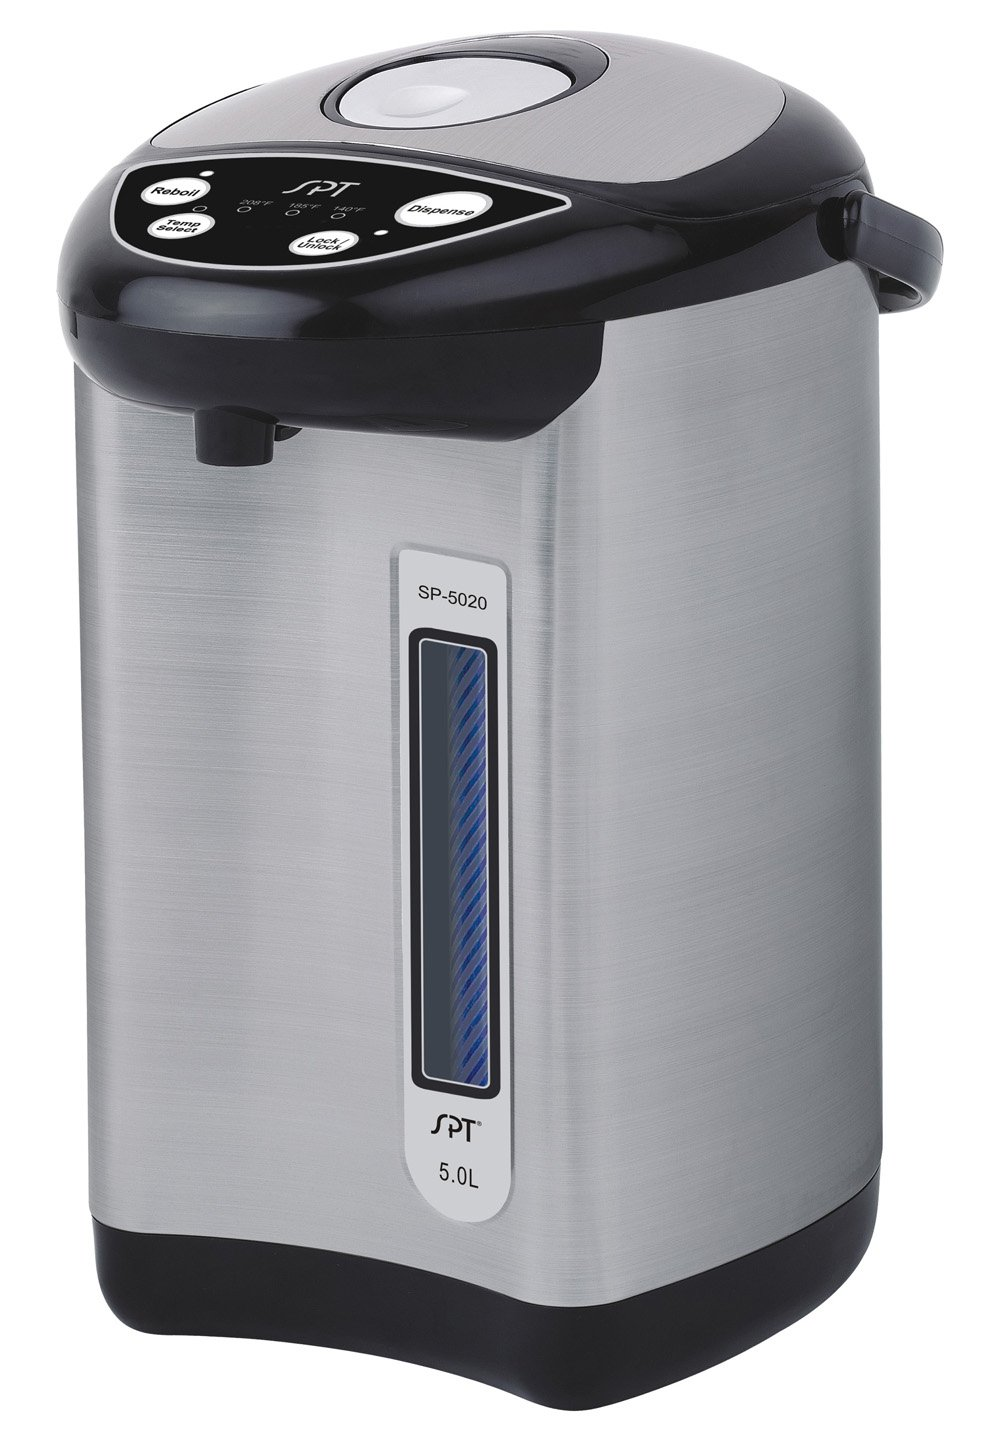 SPT SP-5020 Stainless with Multi-Temp Feature (5.0L), Black Sunpentown